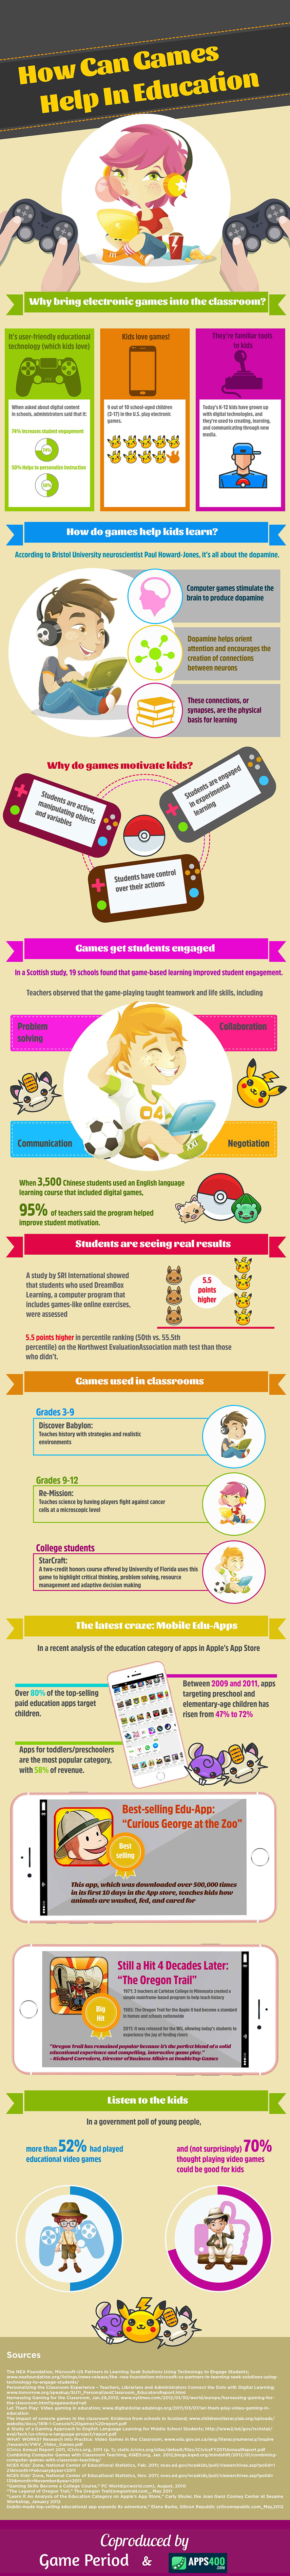 How can Games help in Education